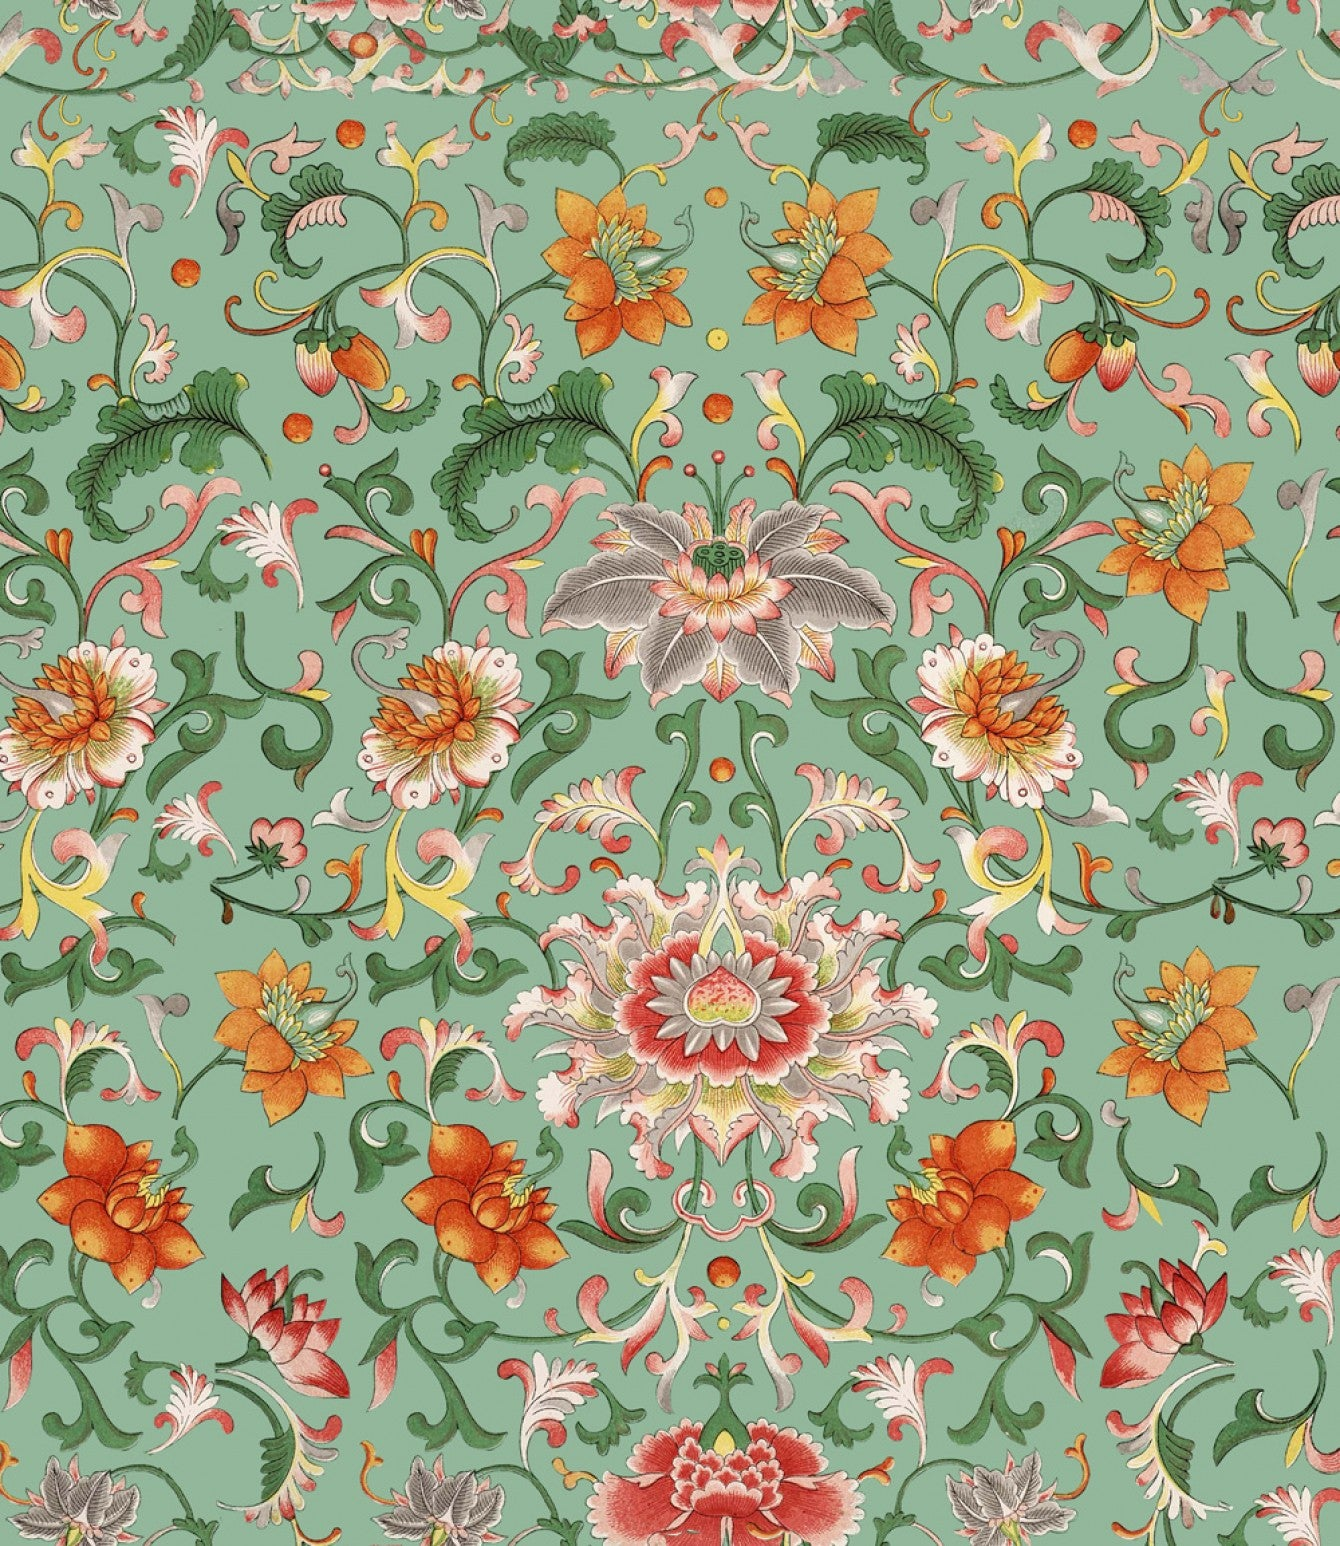 Chinese Floral Wallpaper In Green And Orange From The Eclectic